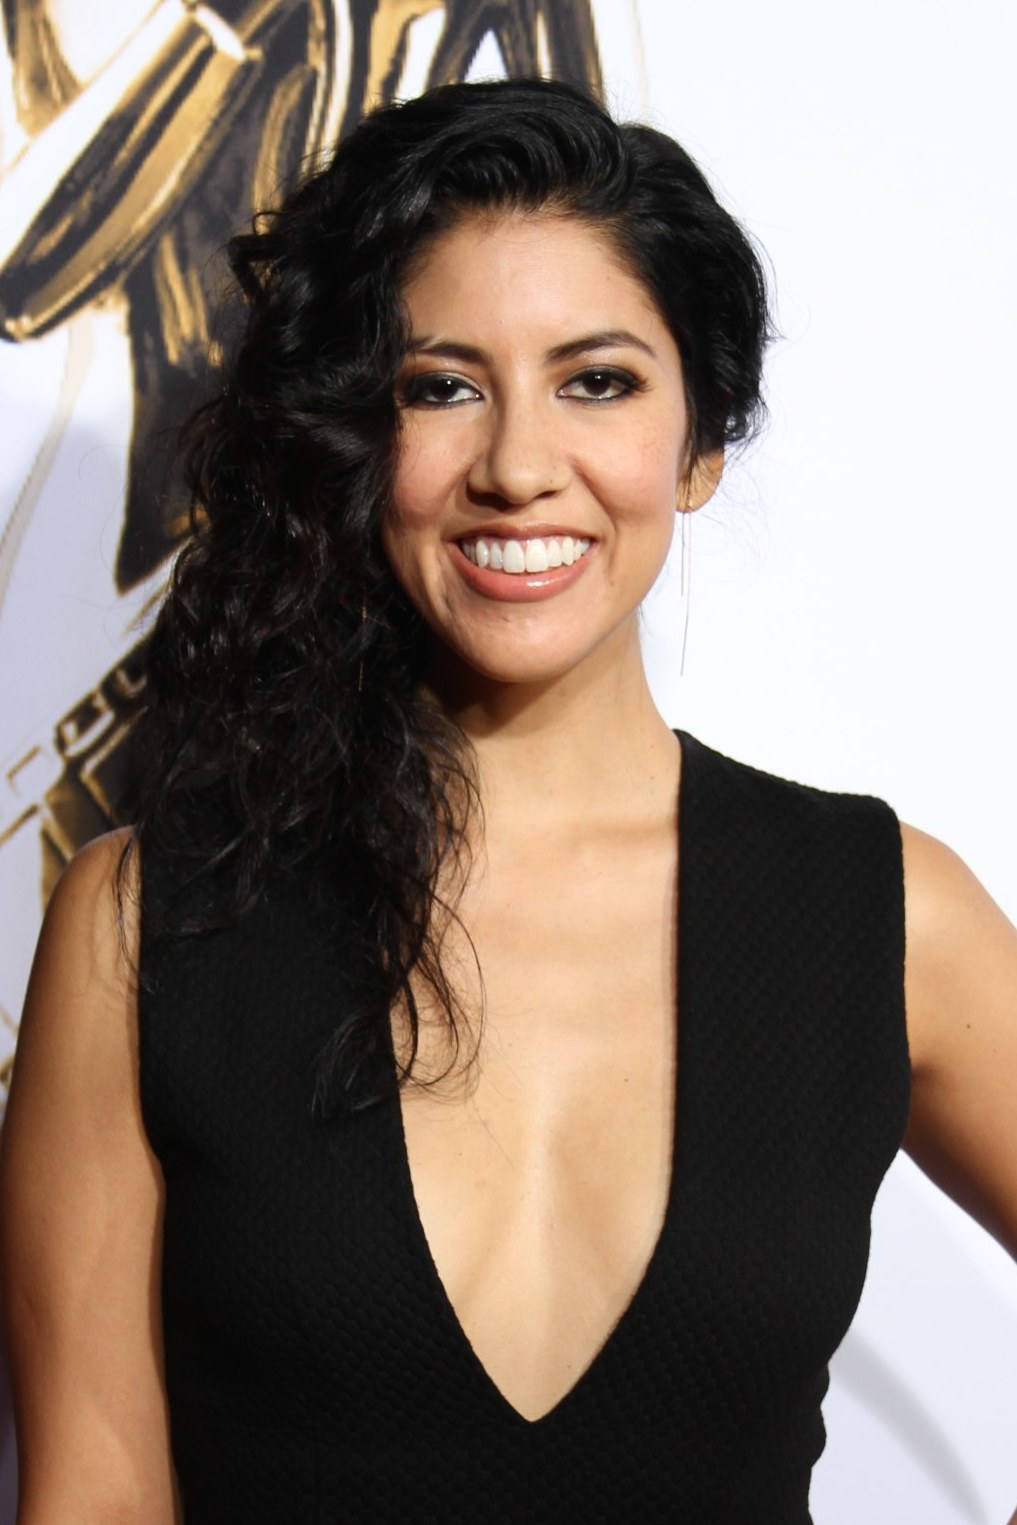 Stephanie Beatriz - Wikipedia